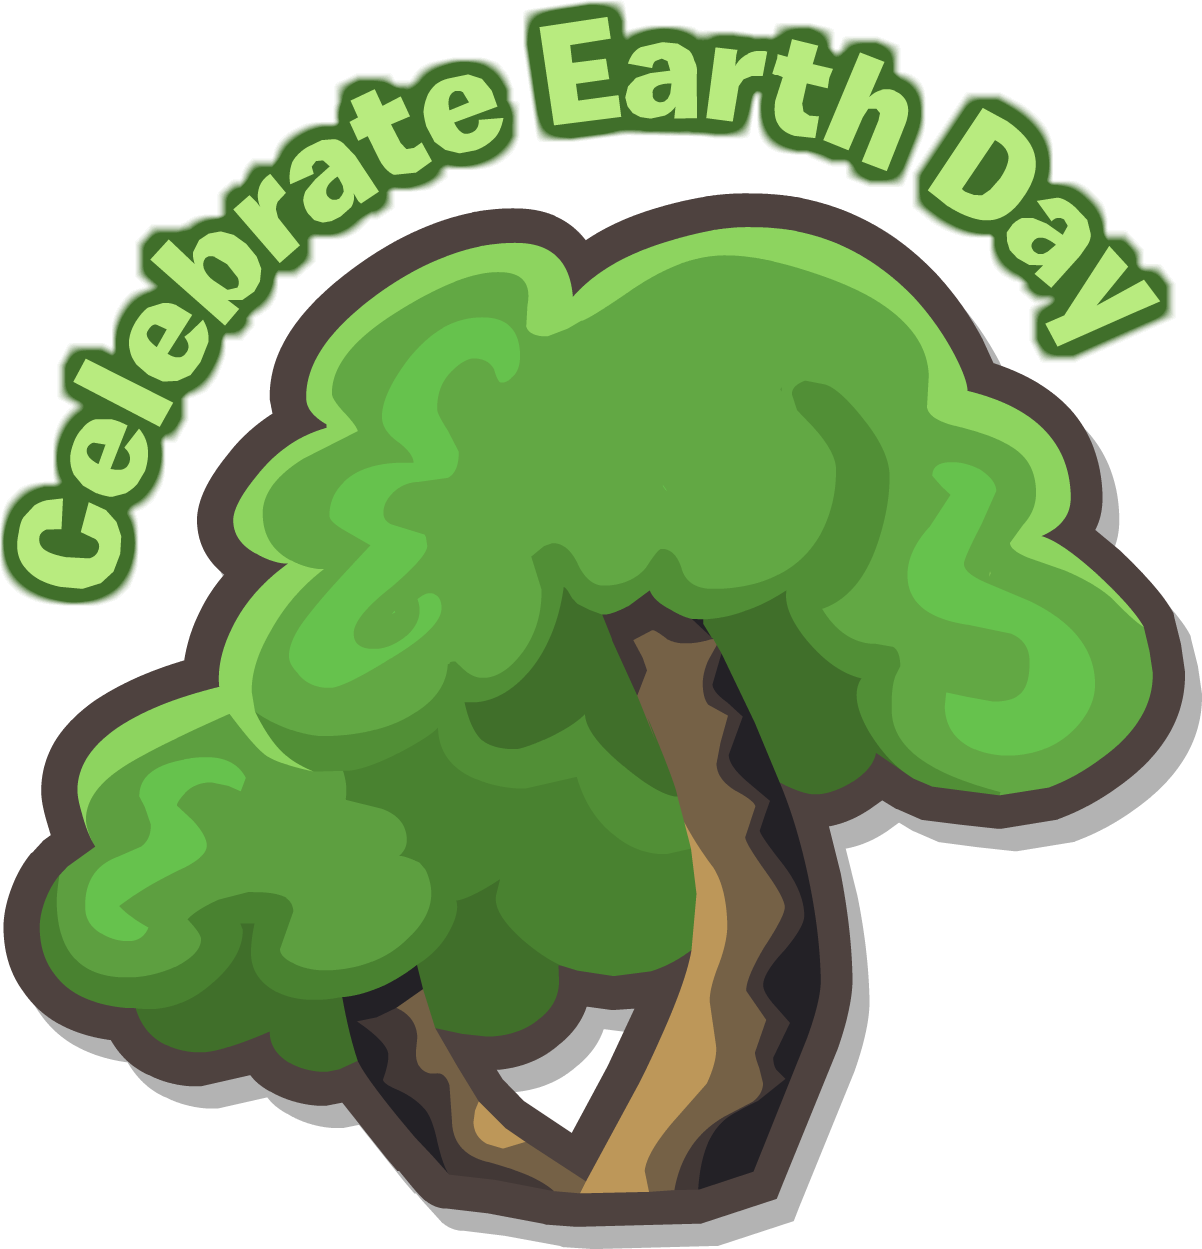 EarthDay